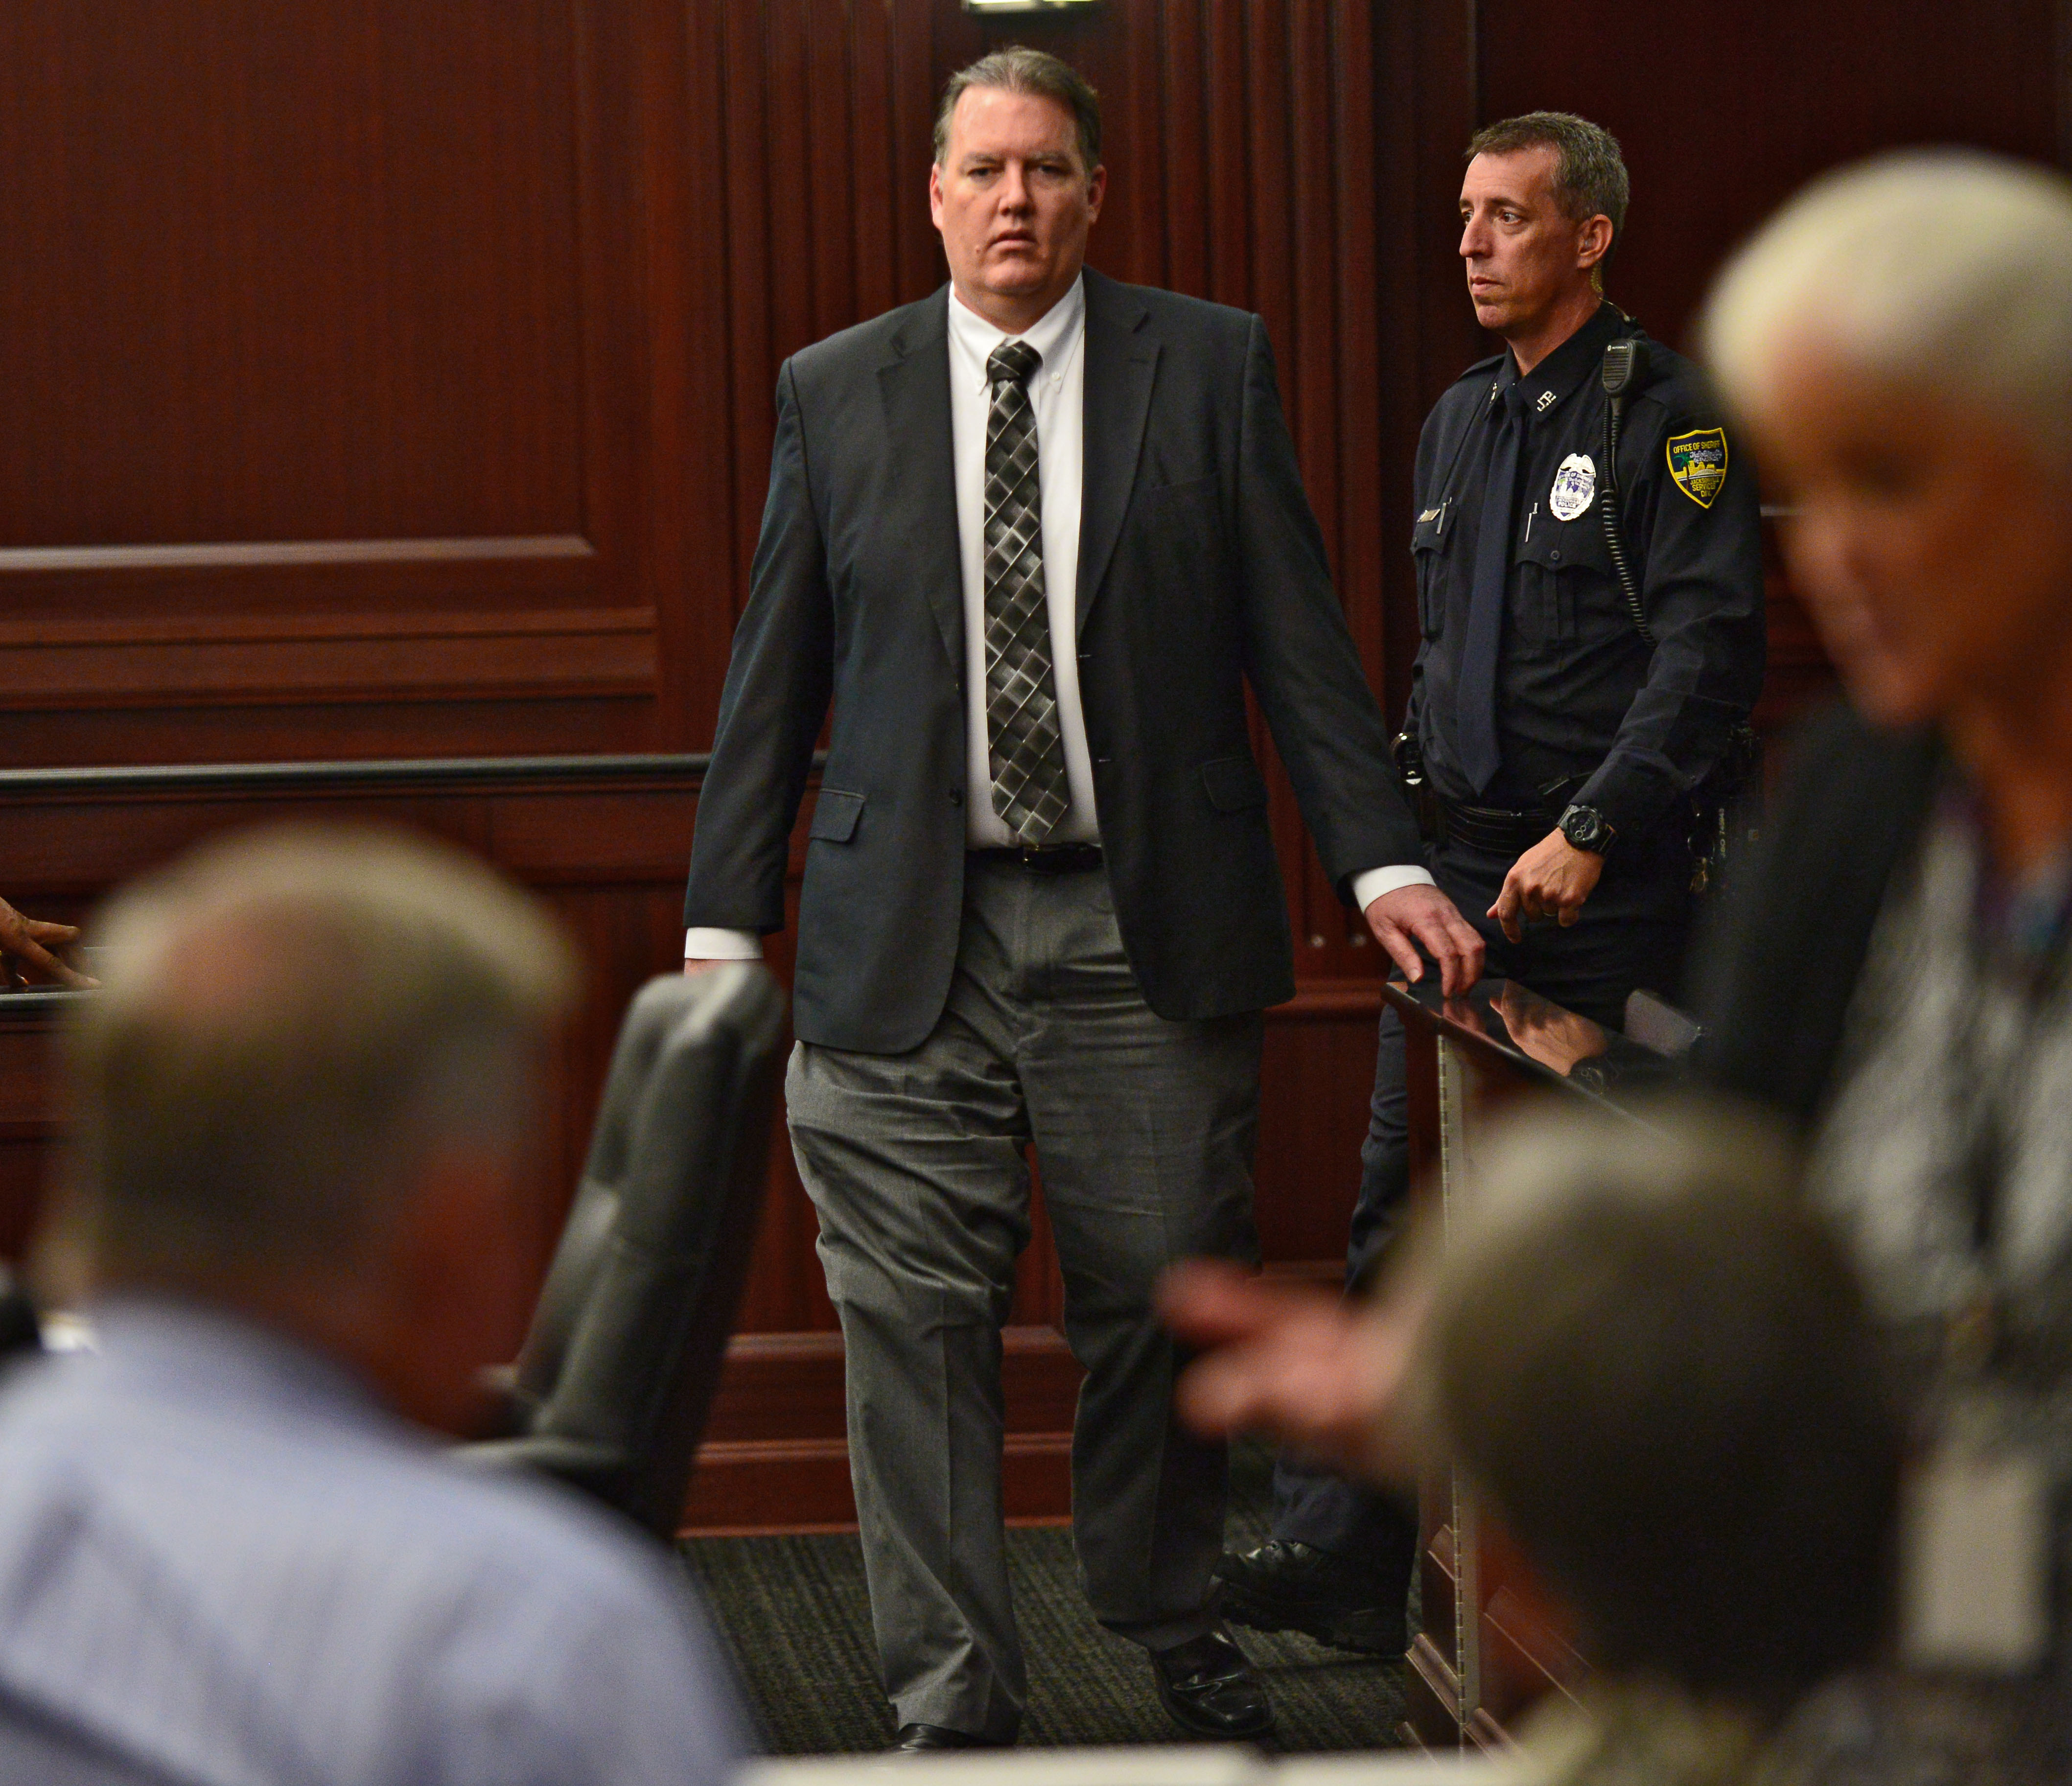 Defendant Michael Dunn walks back into the courtroom after a short afternoon break during his trial in the Duval County Courthouse in Jacksonville, Fla. on Sept. 27, 2014.